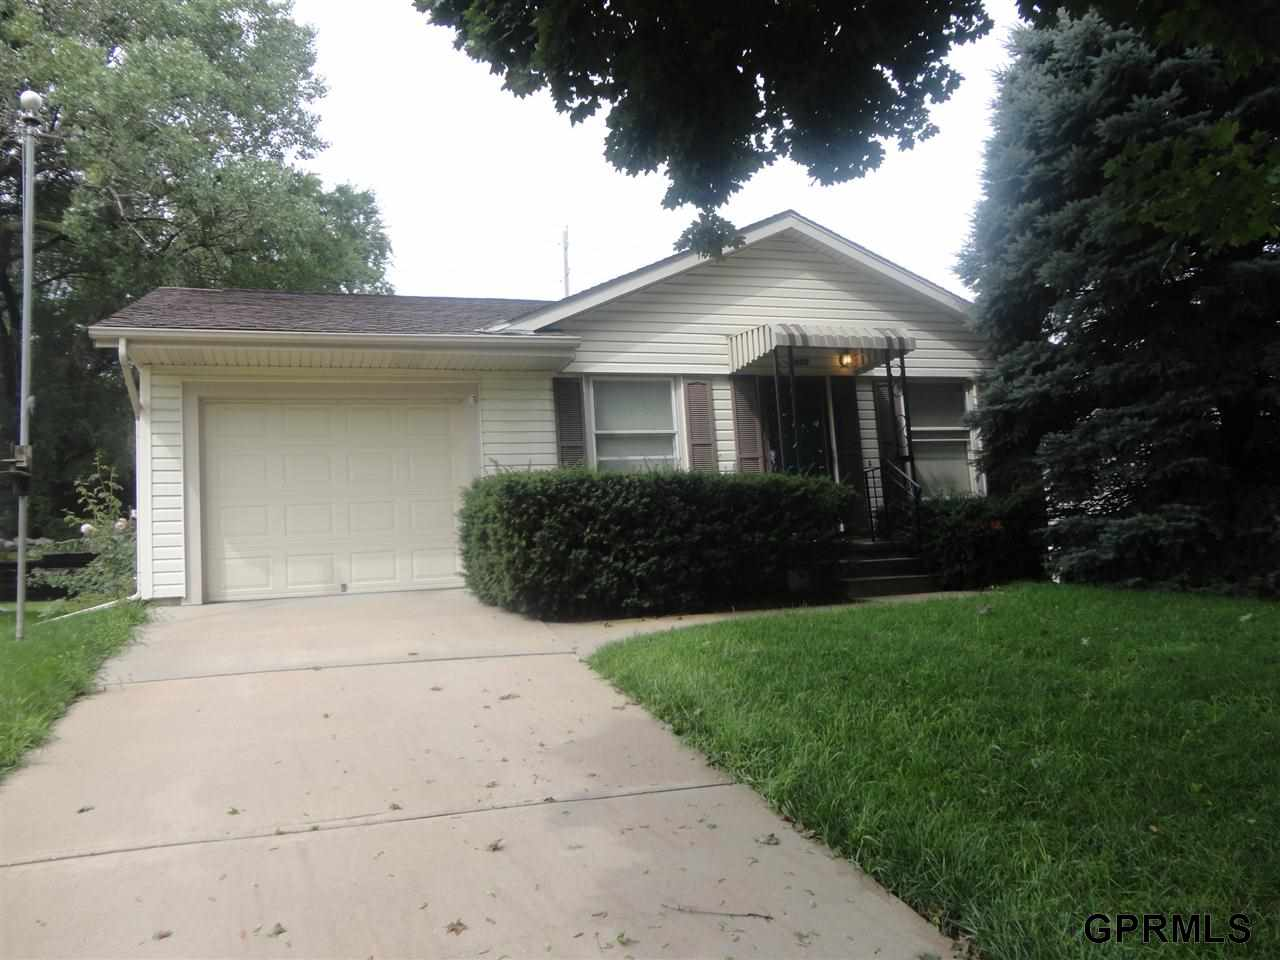 Rental Homes for Rent, ListingId:29708704, location: 2608 S 36 Street Omaha 68105